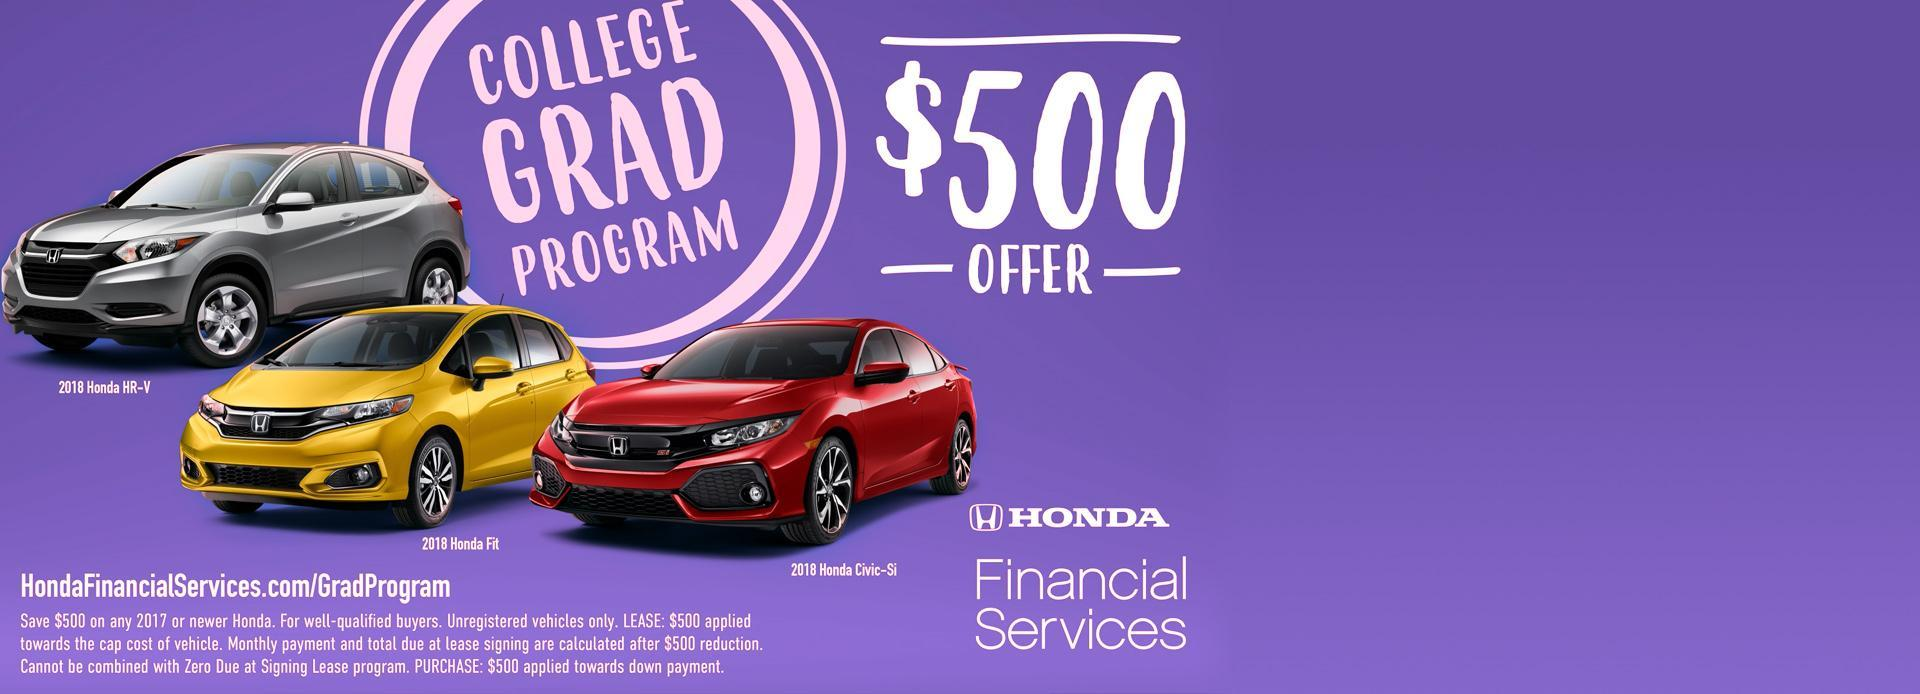 Honda Cars of Katy | Accord, Civic & CR-V Dealership in Houston